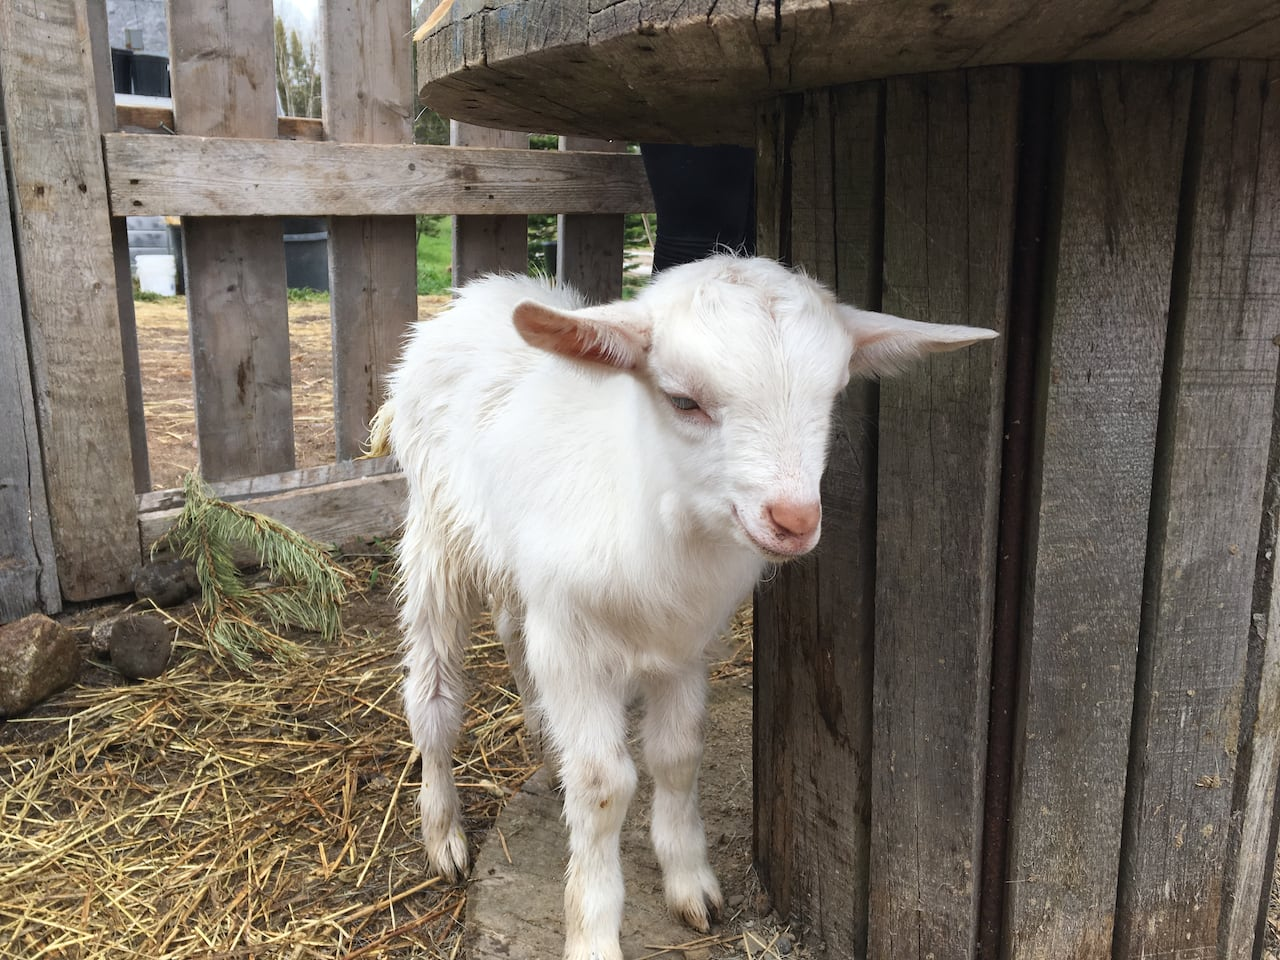 A goat thinks it's pregnant and a kid milks the situation: The story